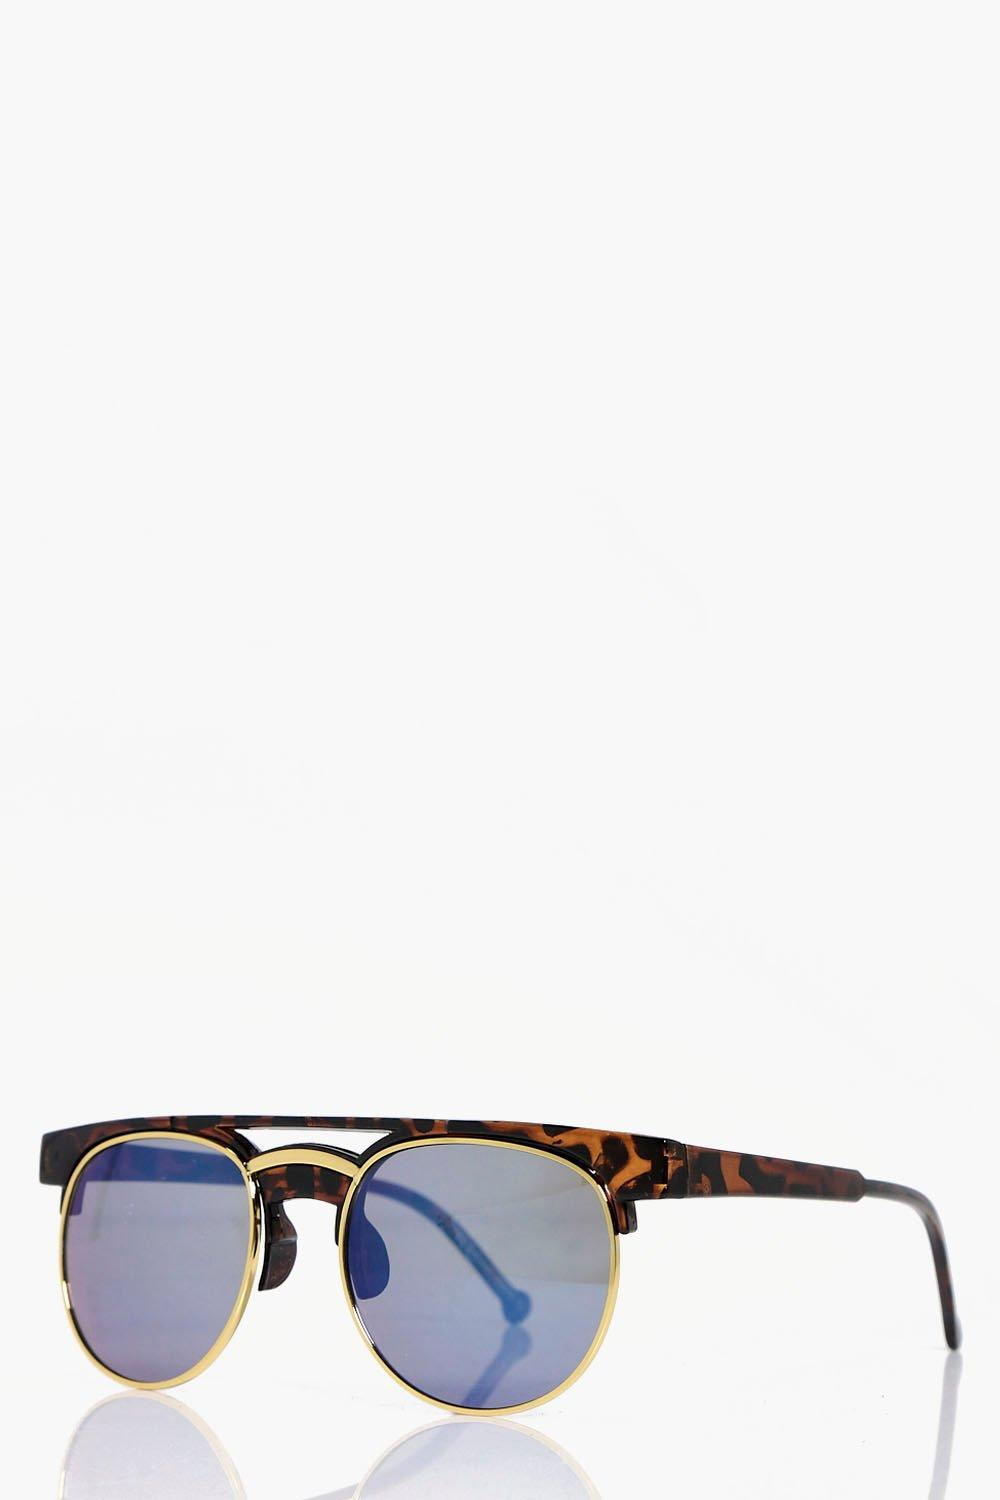 Boohoo Mia Thick Tortoise Frame Sunglasses in Brown